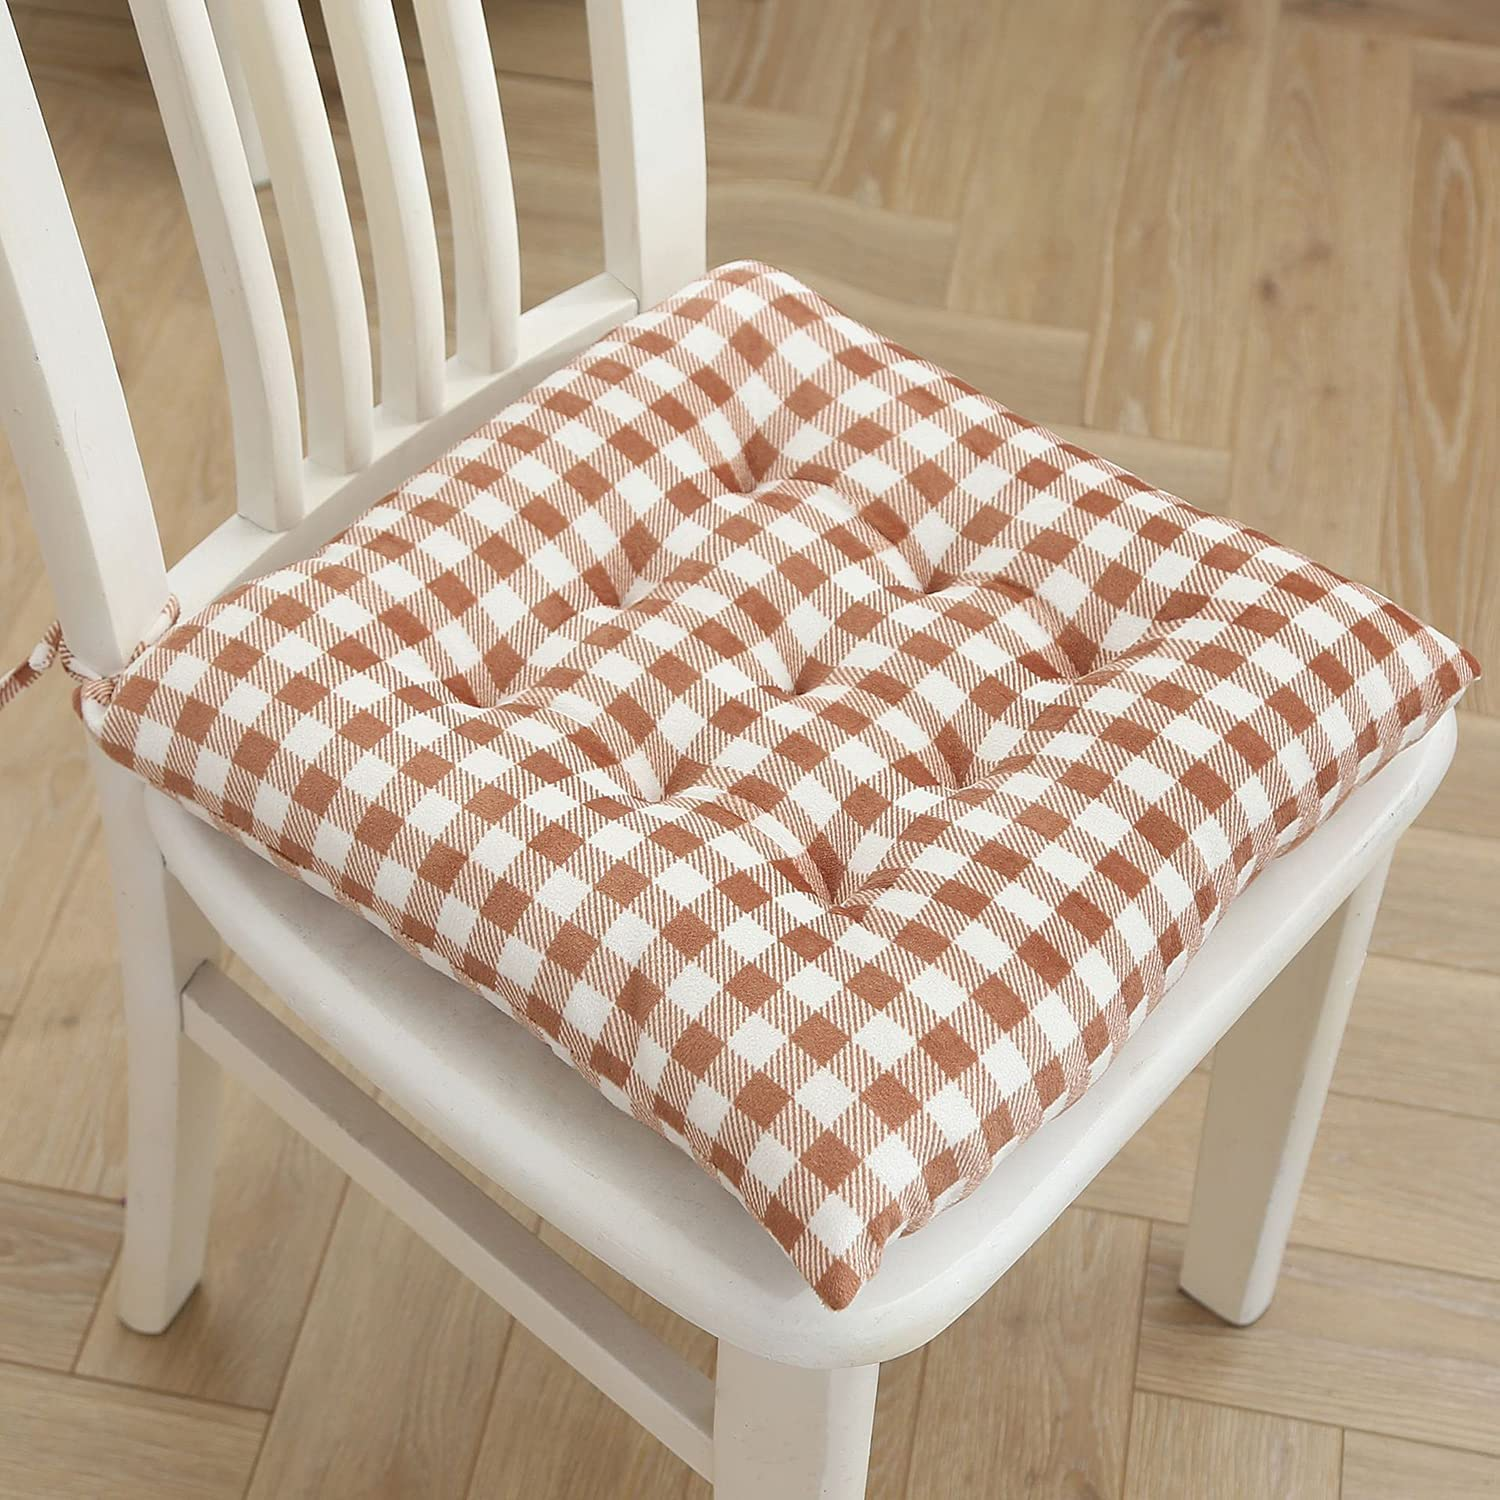 Brand new Chair Cushions High quality for Dining Chairs - Office Pack 6 Cushion